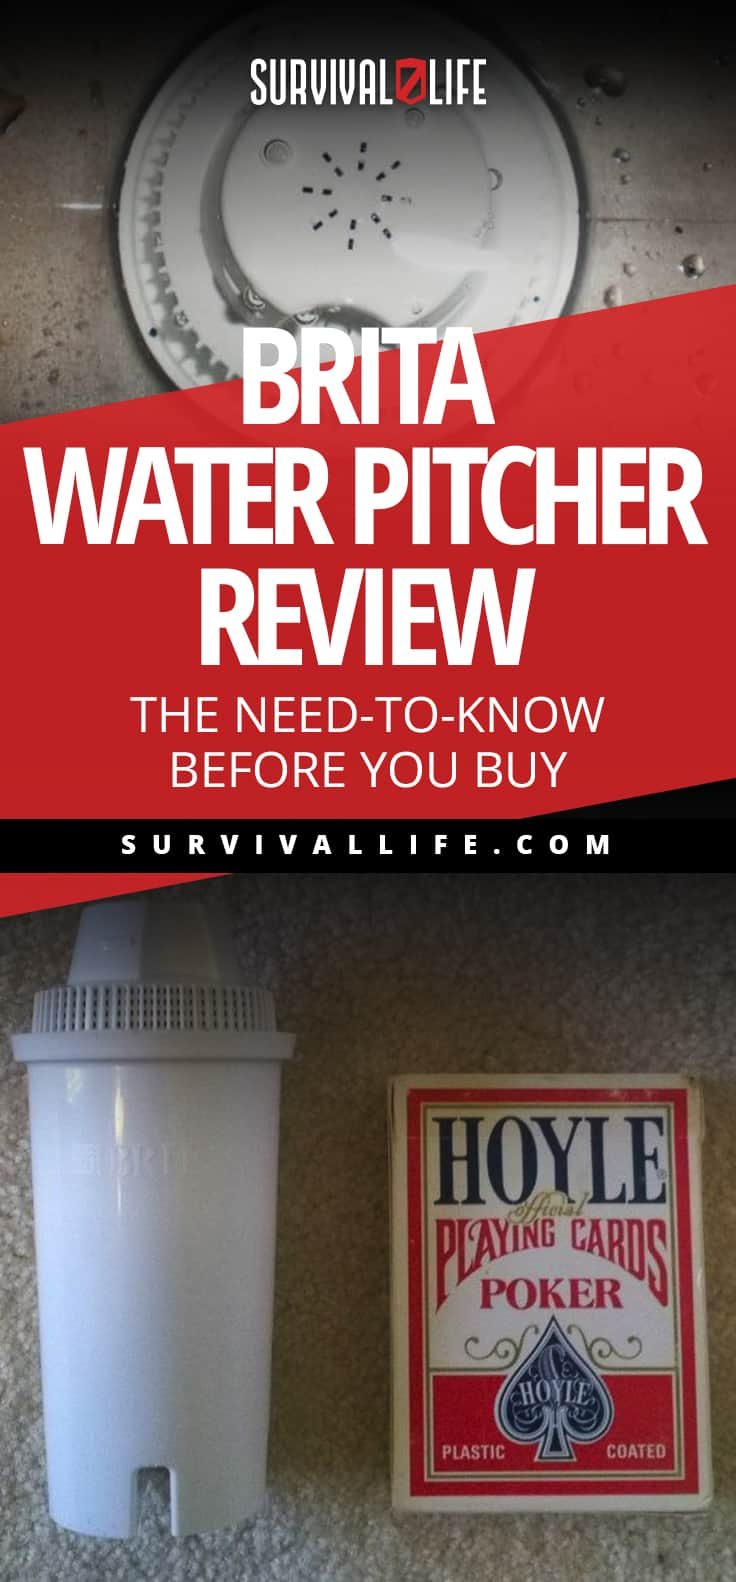 Brita Water Pitcher Review | The Need-to-Know Before You Buy